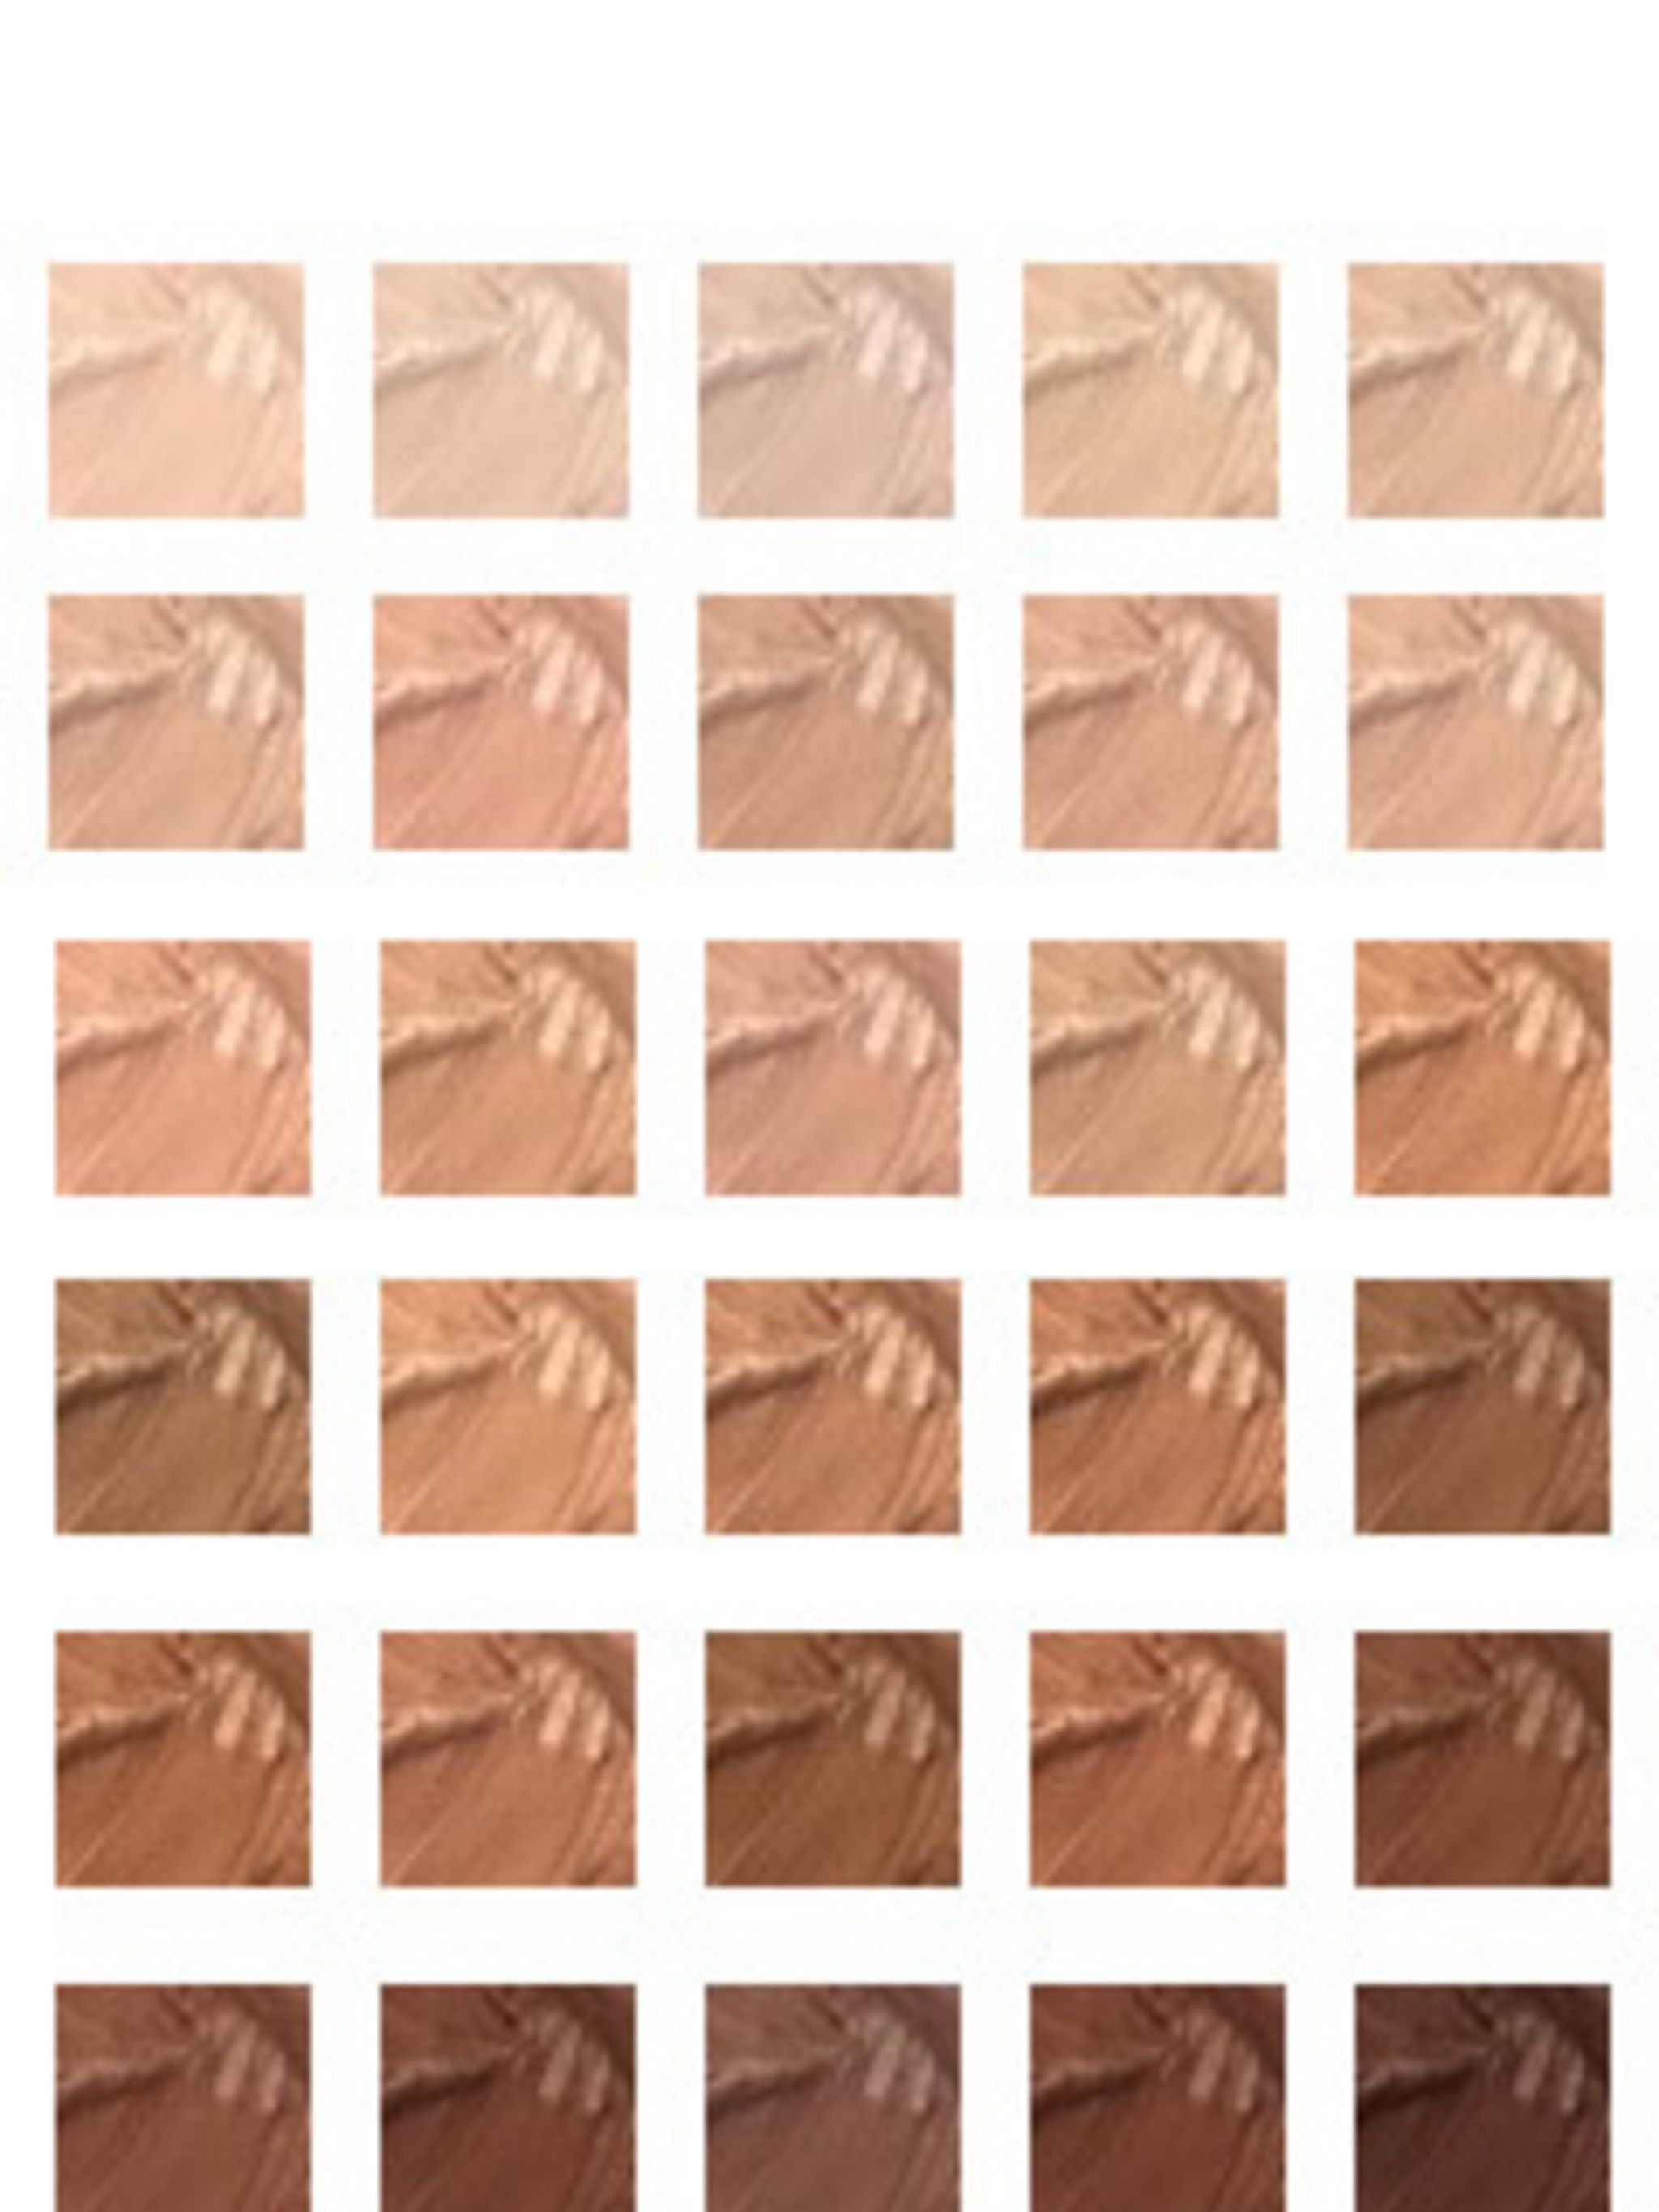 <p>Despite it costing the brand more than it actually makes in sales, Becca Cosmetics founder Rebecca Morrice Williams insists on having a whopping 30 shades of Stick Foundaton, £35, and 33 shades of Compact Concealer, £30, available to her customers. The